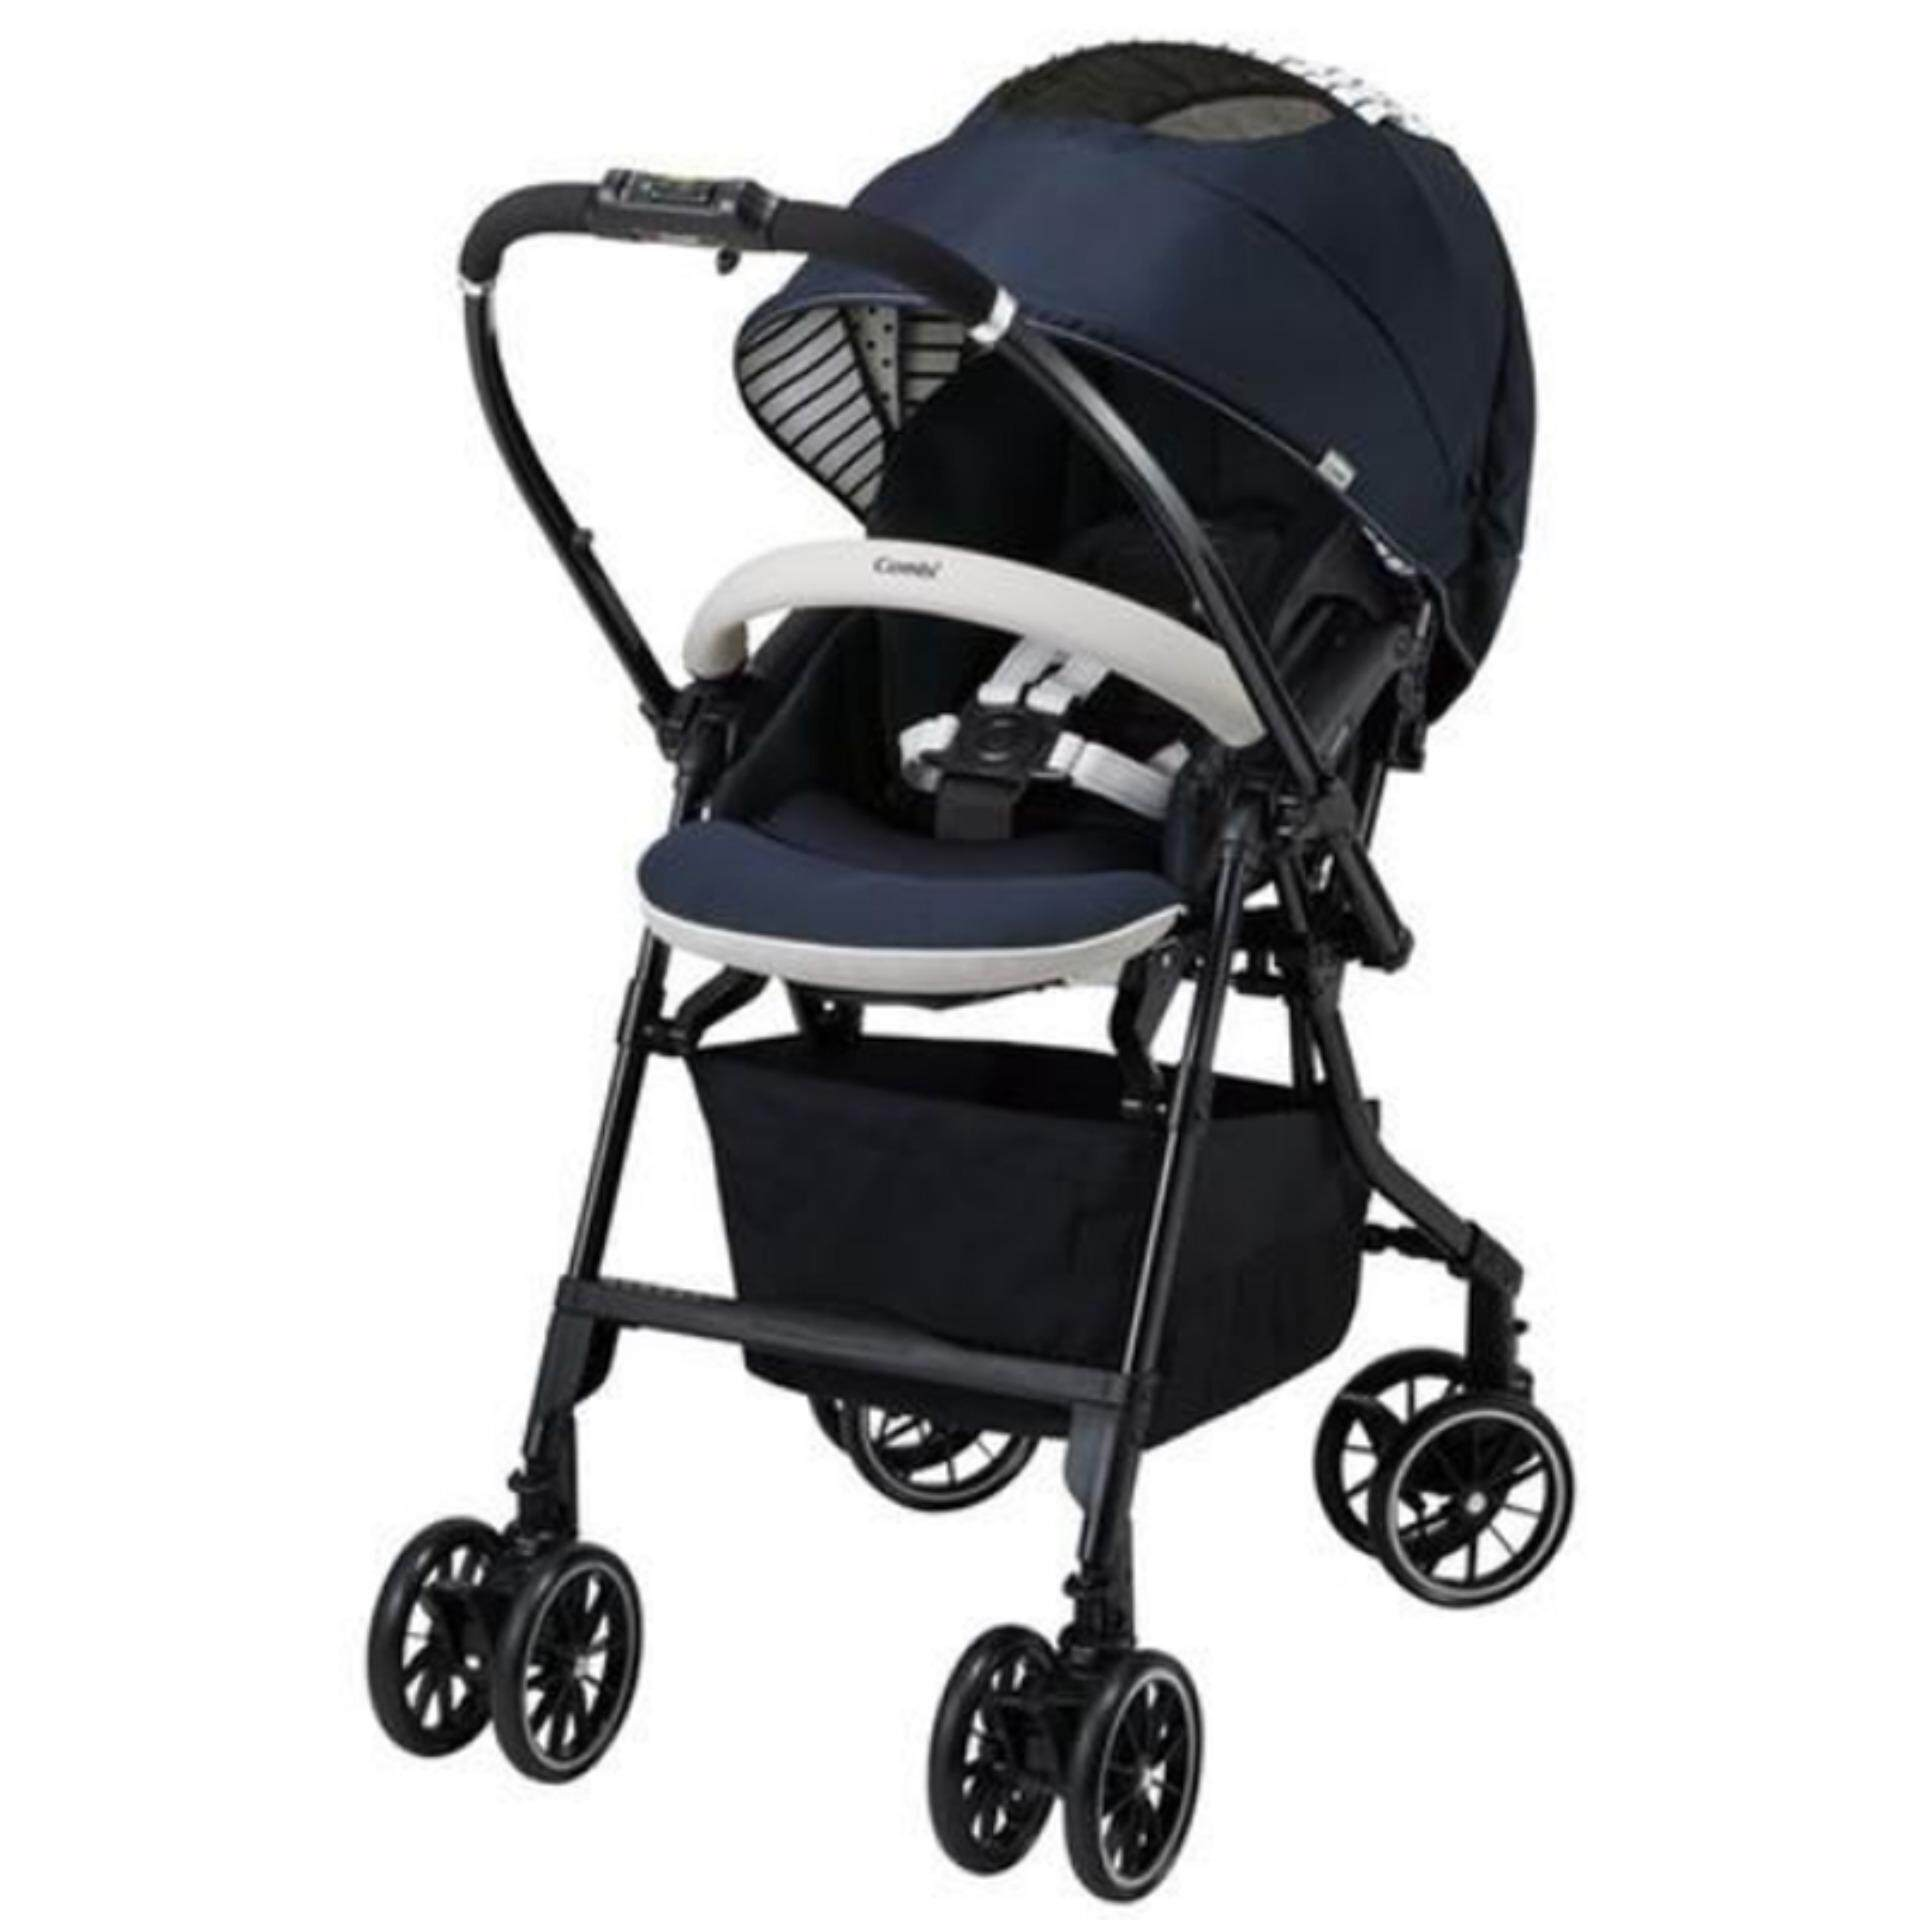 Combi Baby Stroller High Seat 55cm Auto 4 Swivel Wheels Super Light Weight Black